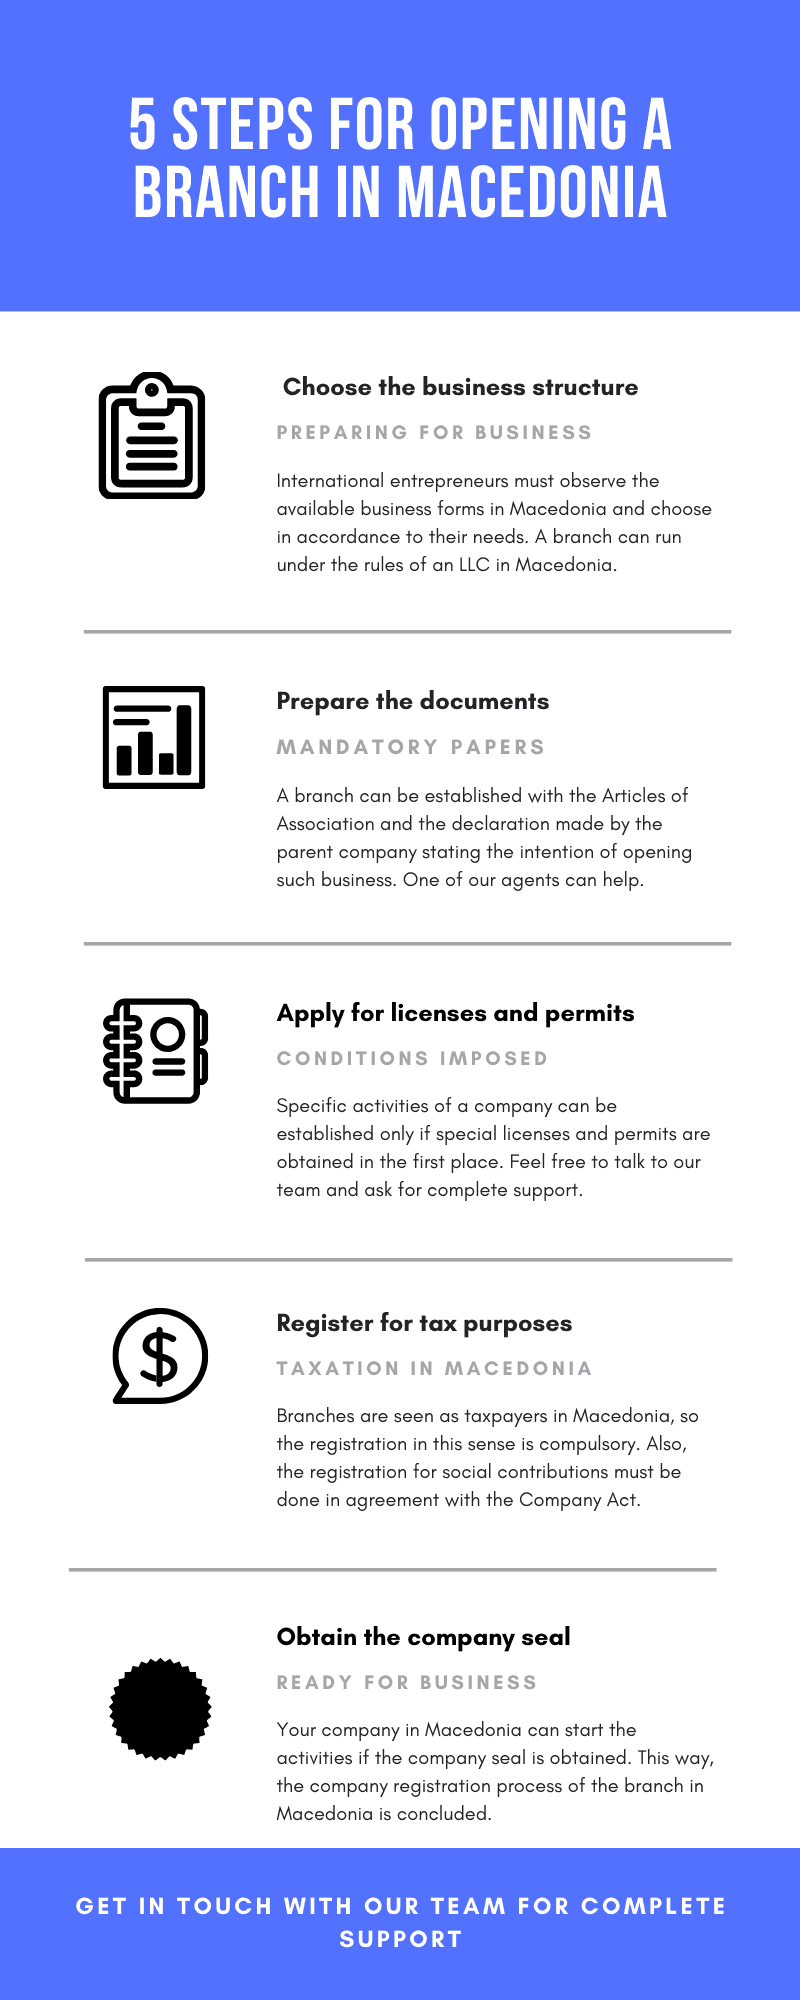 5steps for opening a branch in Macedonia.png